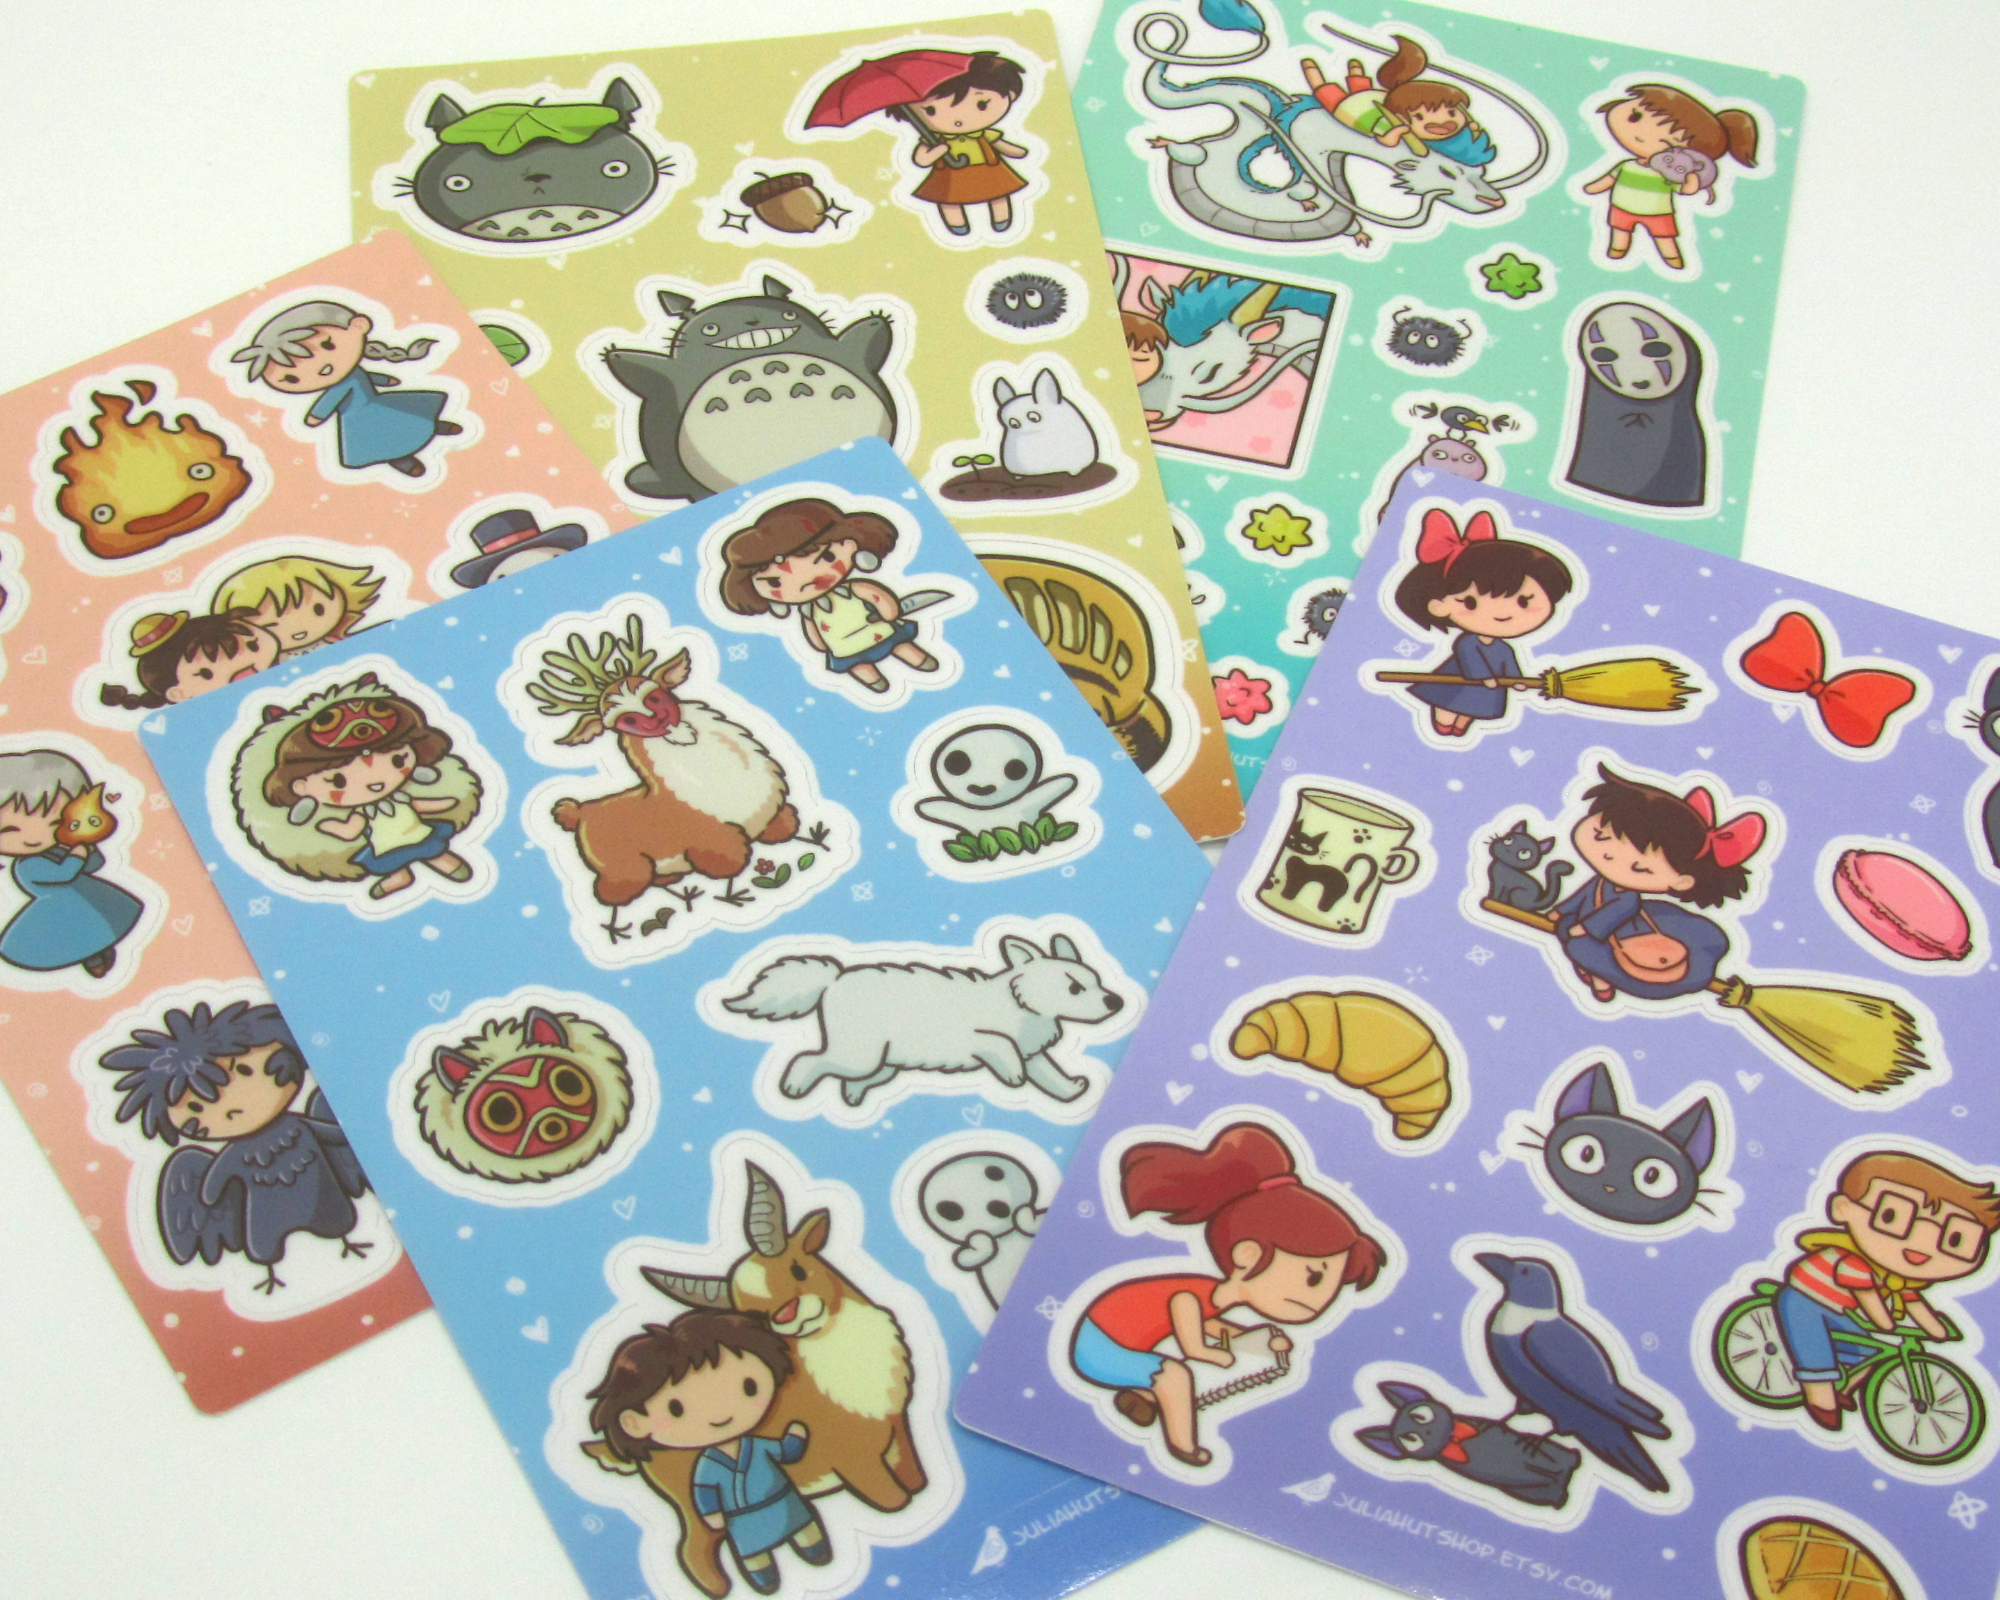 Studio Ghibli inspired stickers